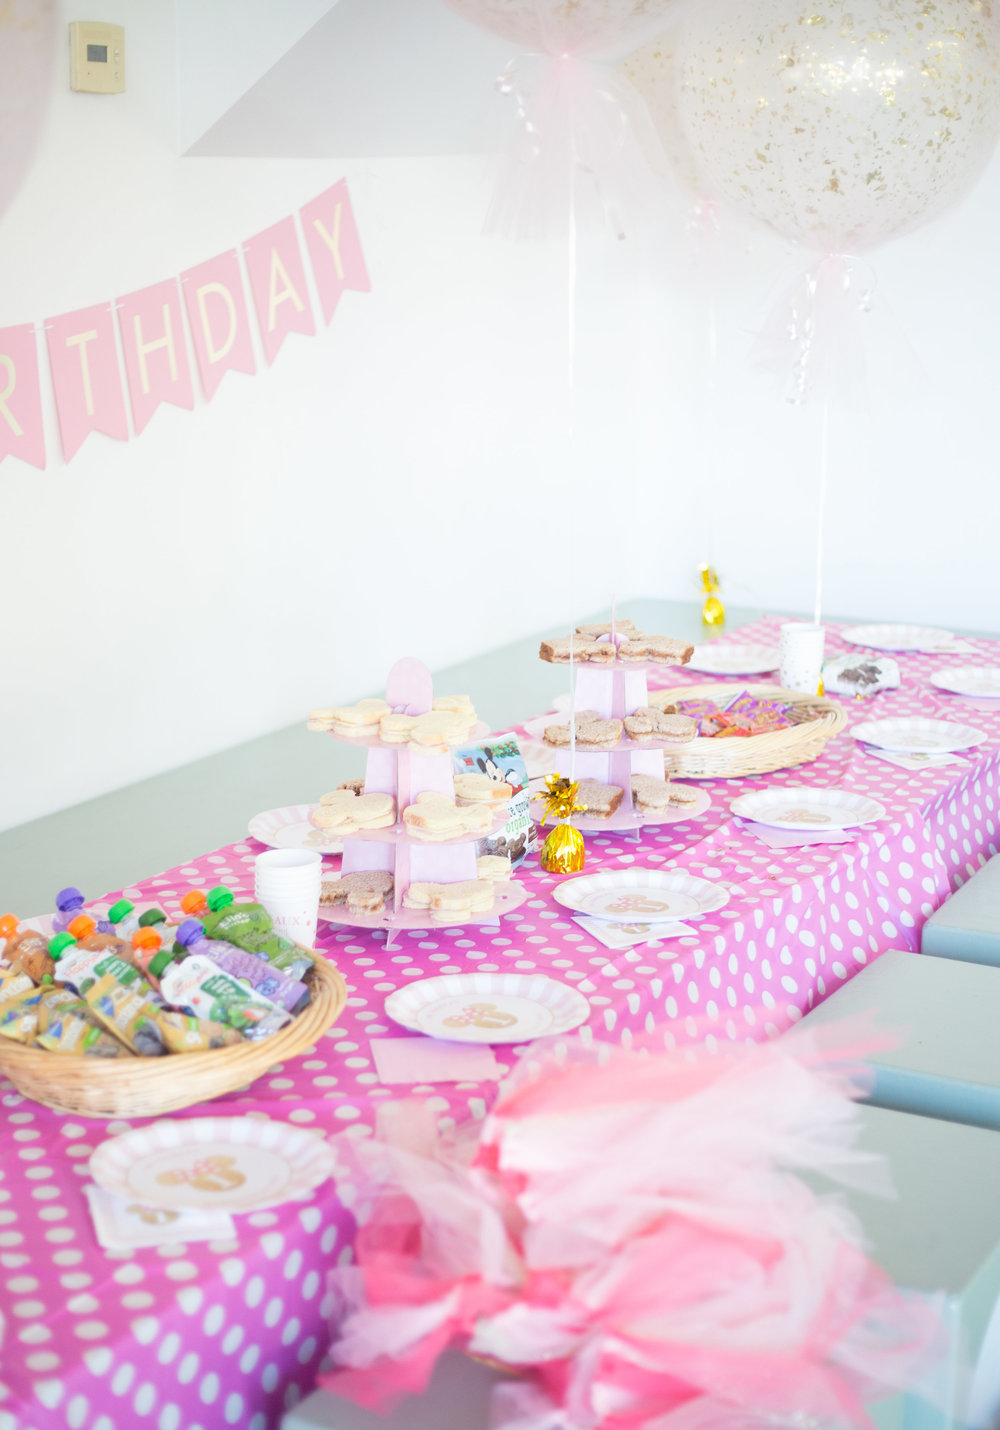 Margaux'_1st_Birthday_03.jpg